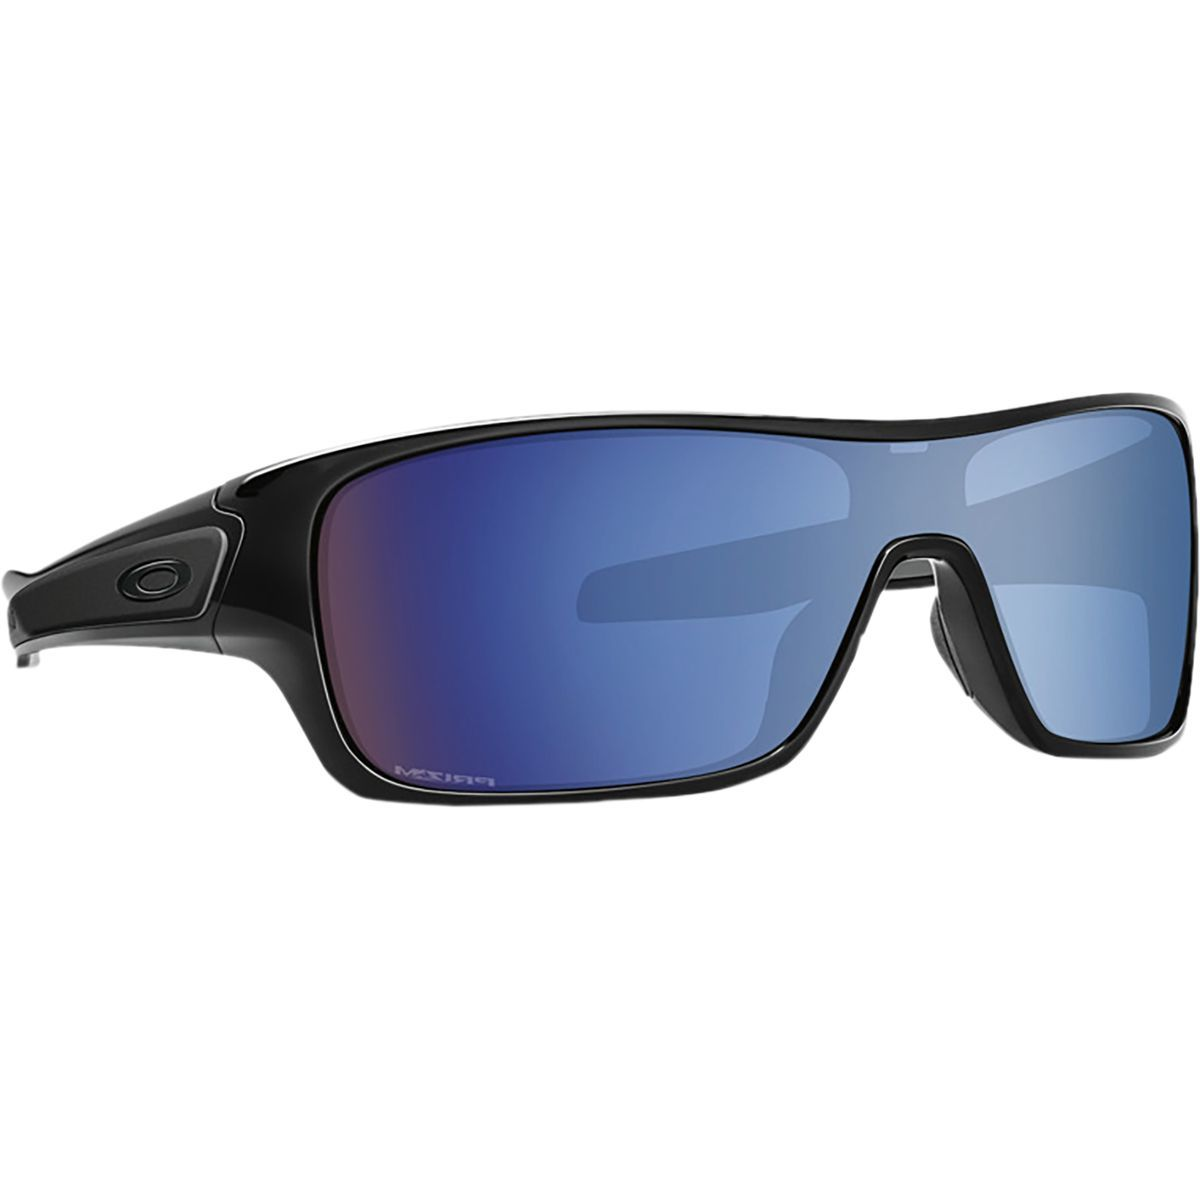 Oakley Turbine Rotor Prizm Sunglasses - Men's